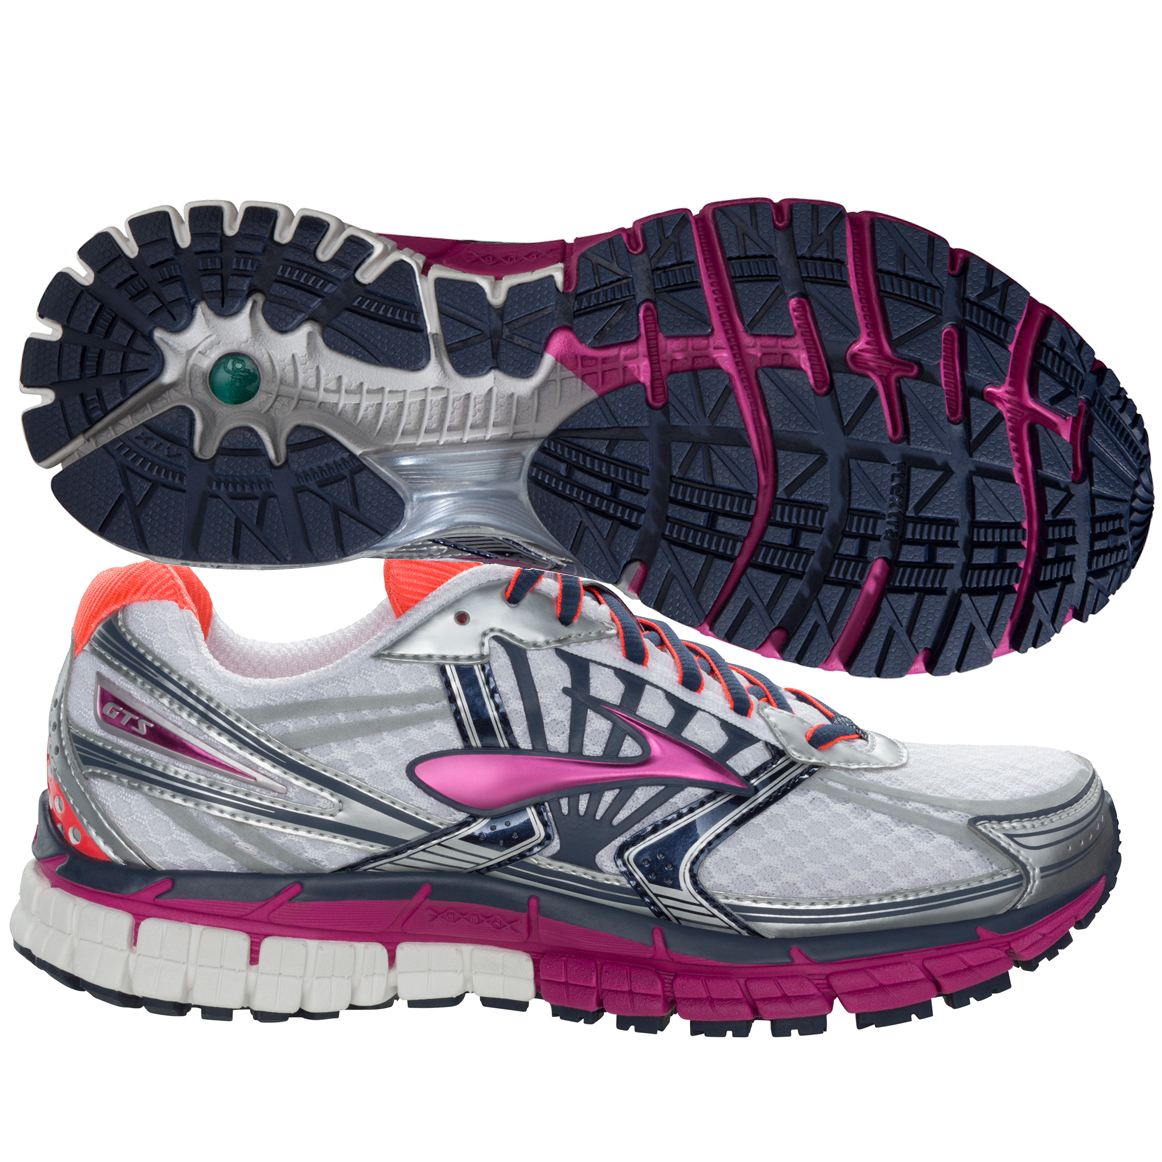 Brooks Adrenaline GTS 12 Running Shoes Review | Running Shoes Guru